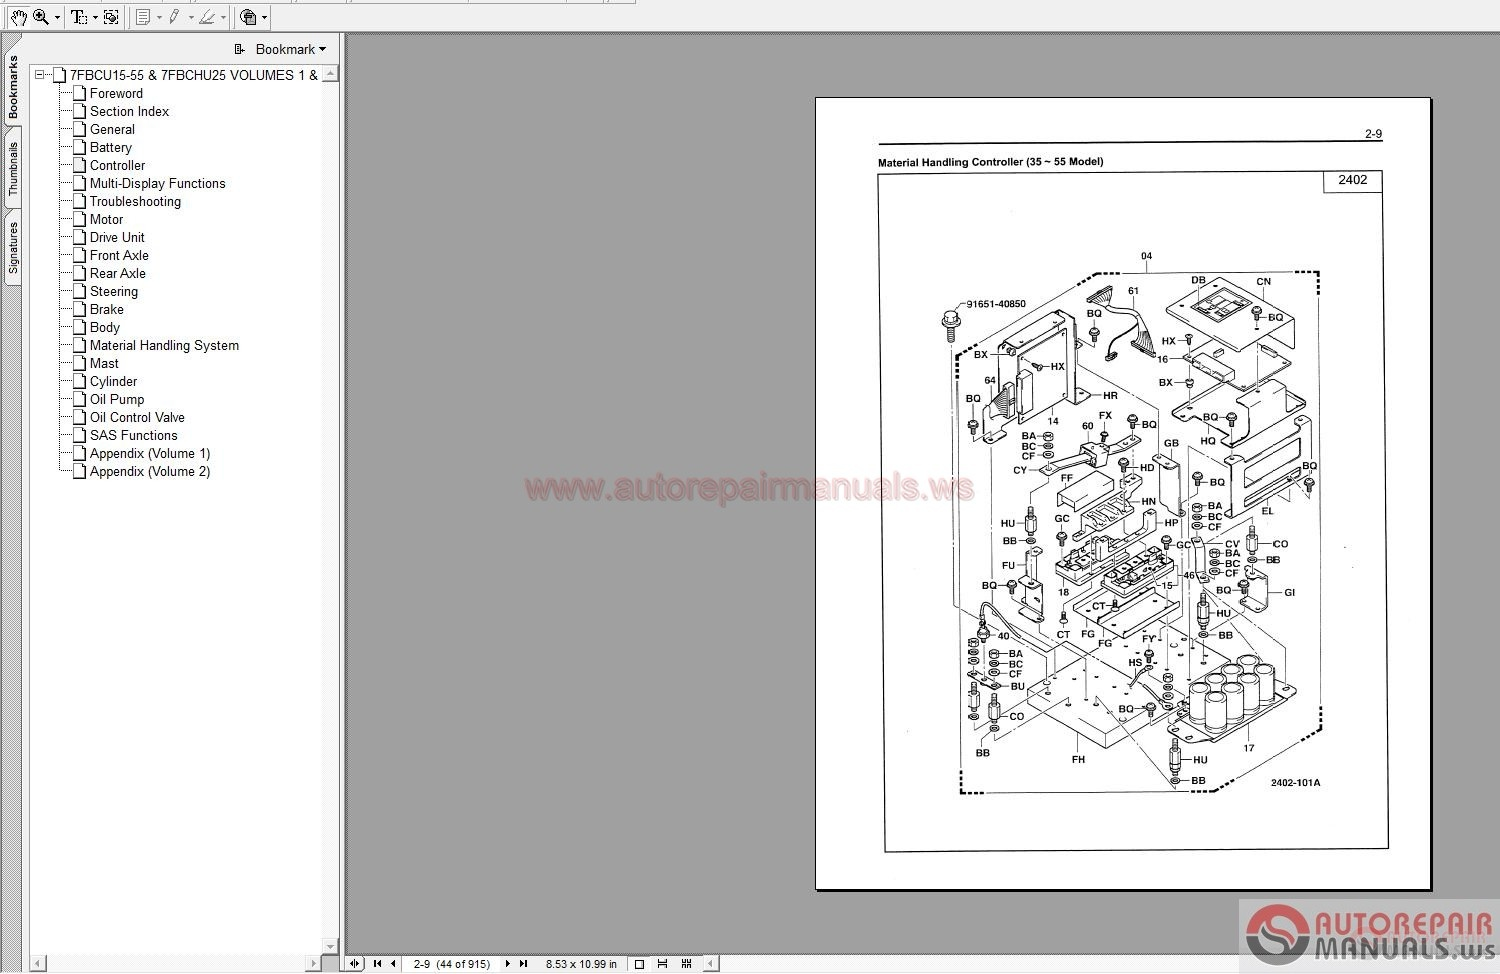 hight resolution of  catalogue mitsubishi fork lift instant manual popular c555 9y engine handbook only engine blue giant home 5fbc 68 thru 85 89 at material handling